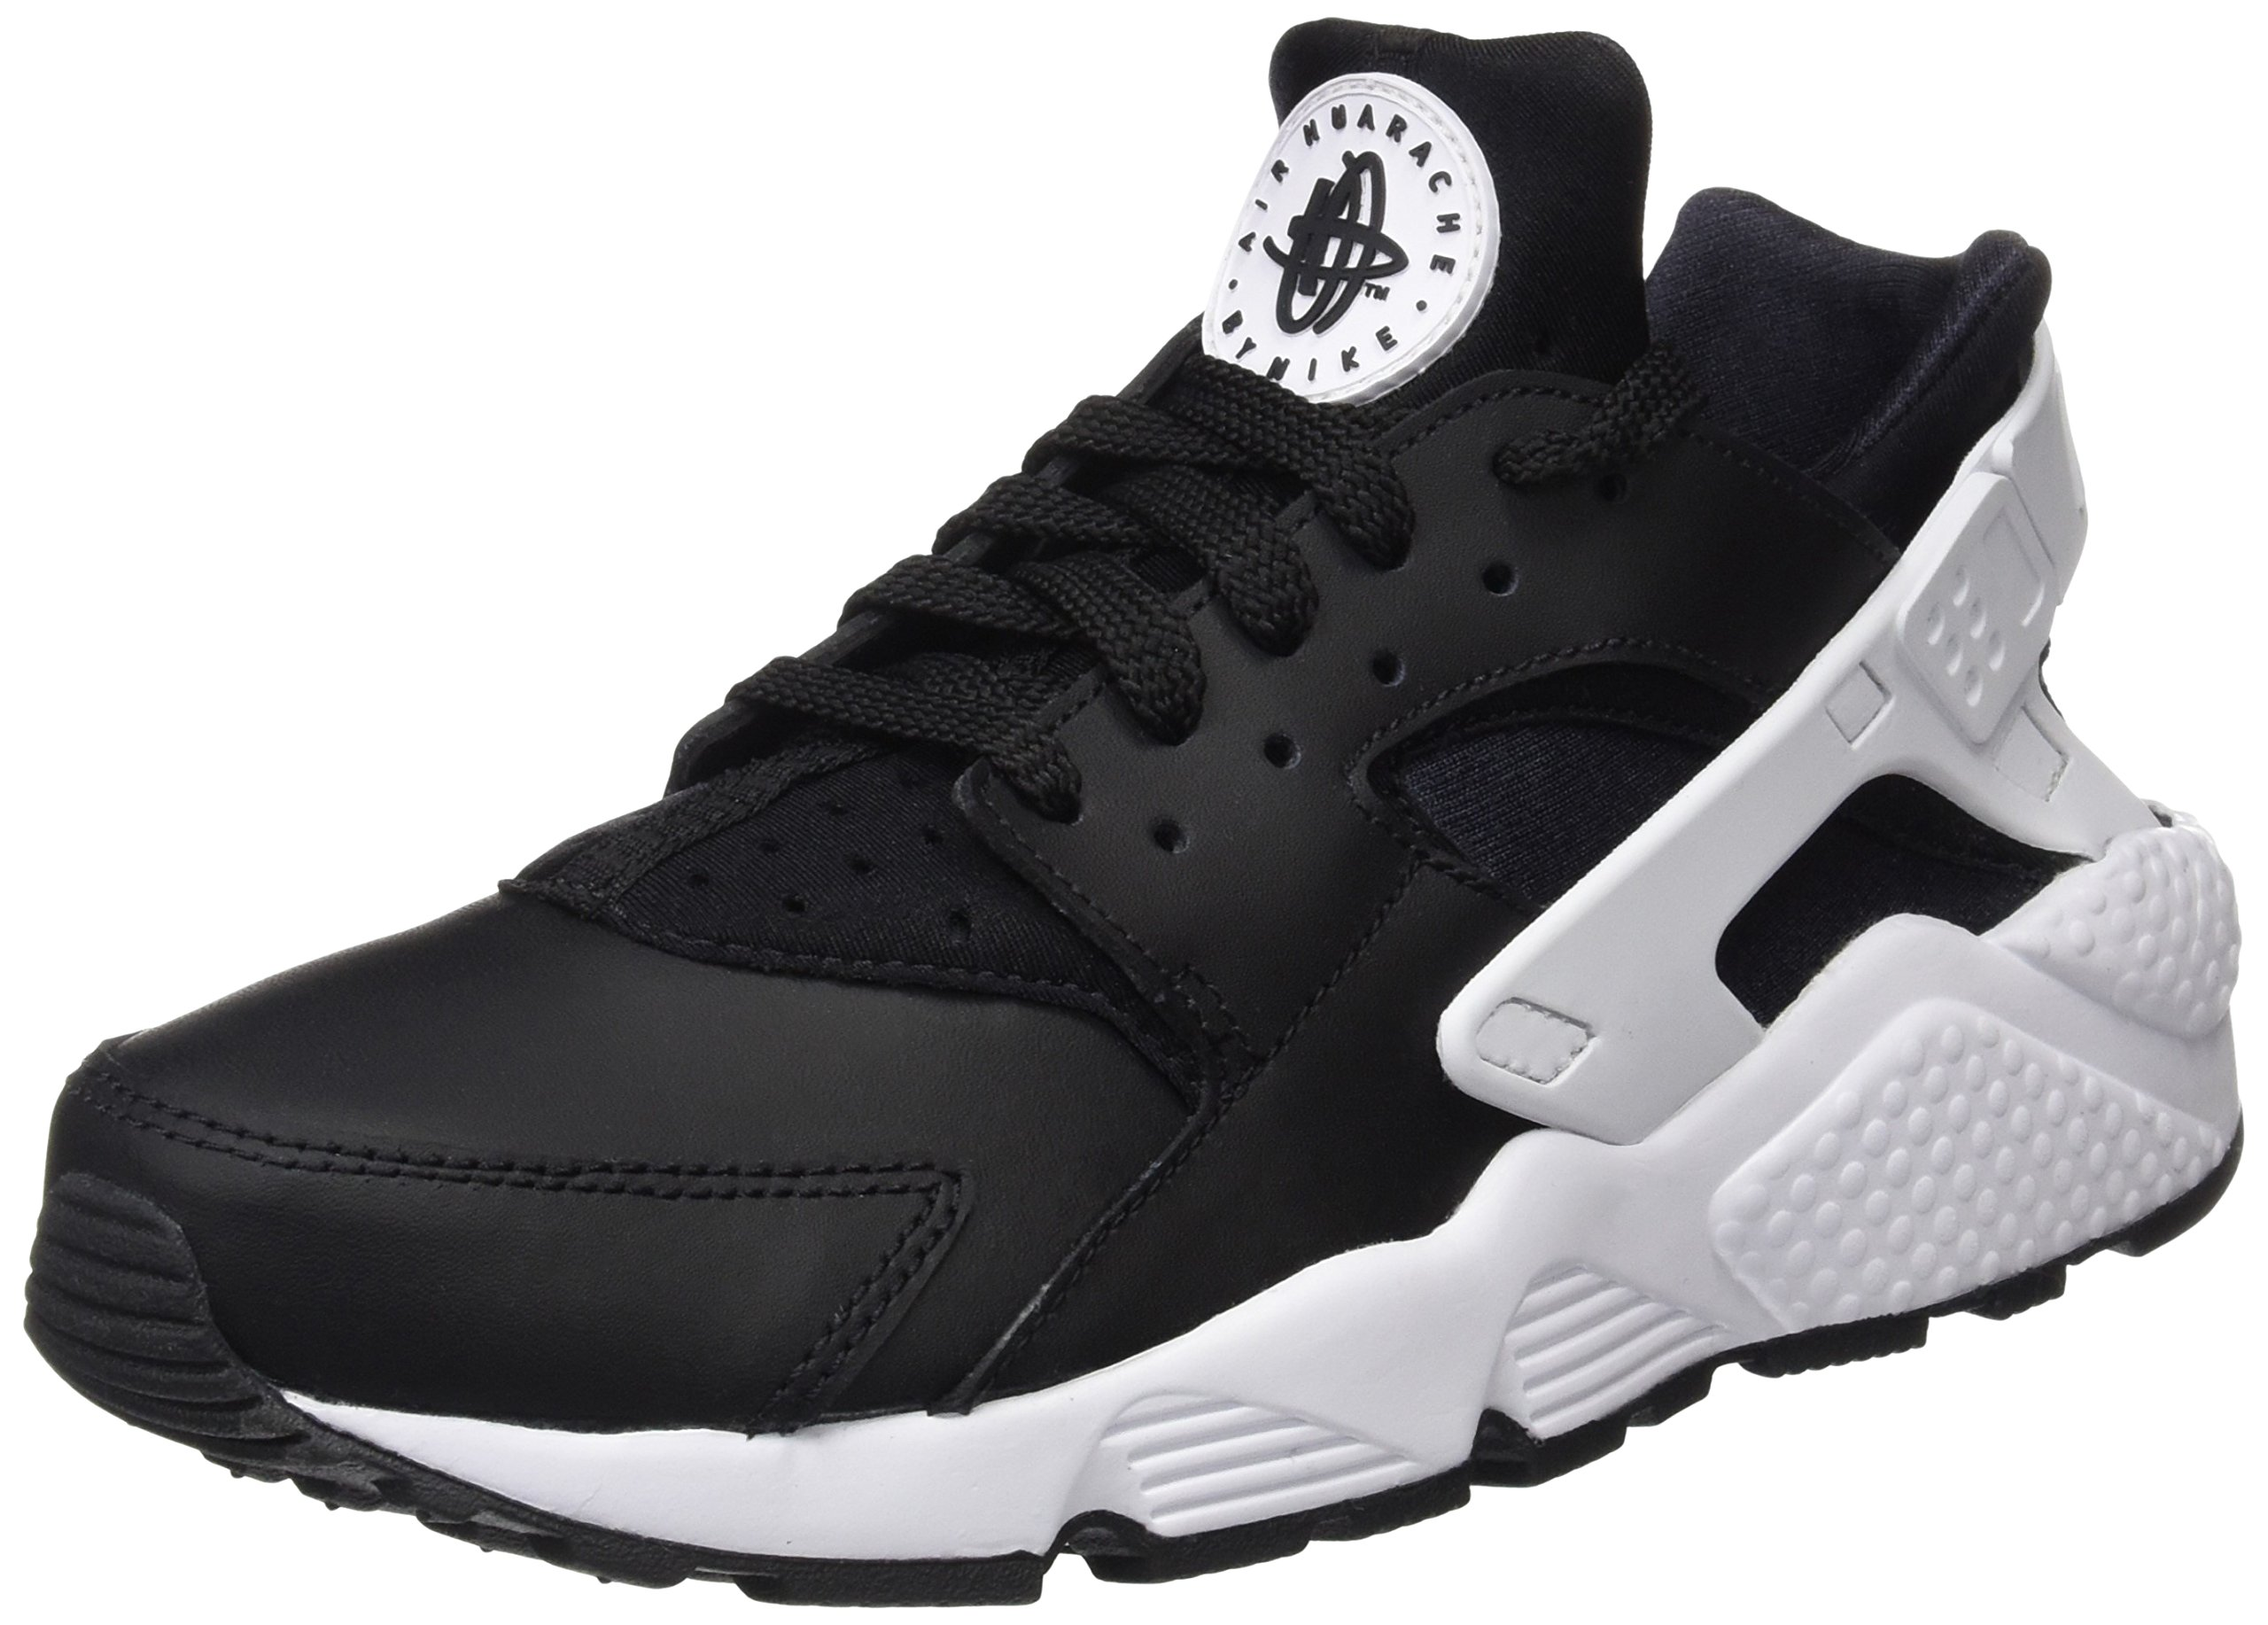 competitive price 14bed e92bb ... Nike Air Huarache, Zapatillas de Gimnasia Hombre. 0% de descuento! On  Sale